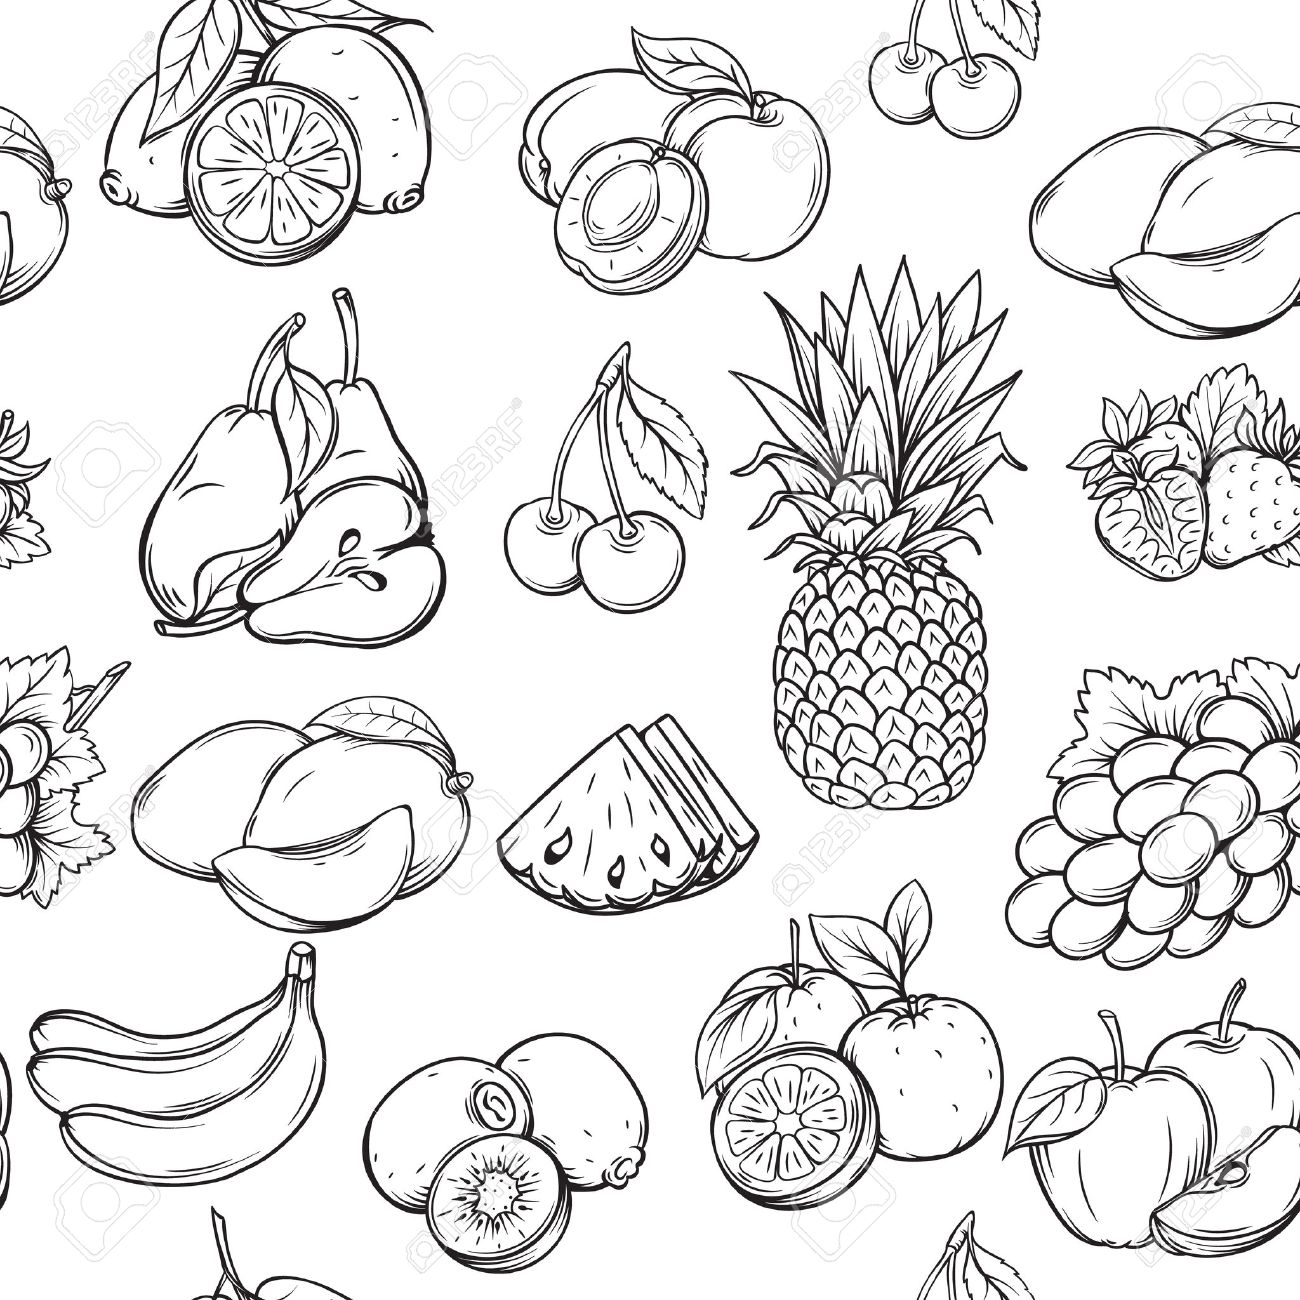 Fruits Drawing At Getdrawings